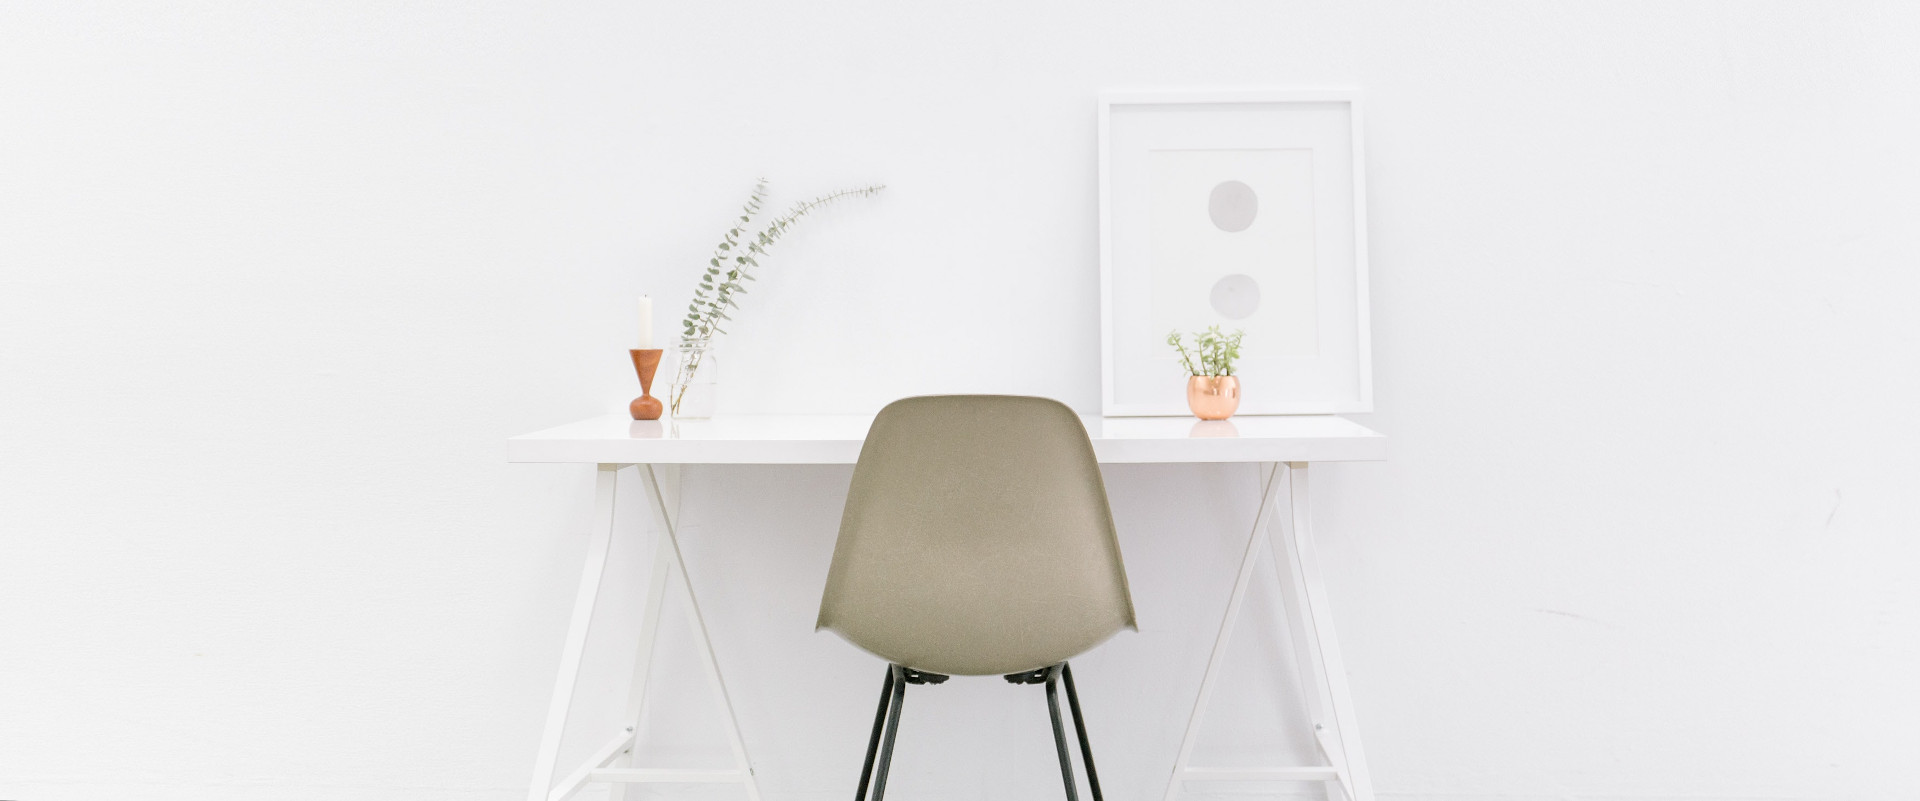 Minimalism can make our lives easier, greener and richer